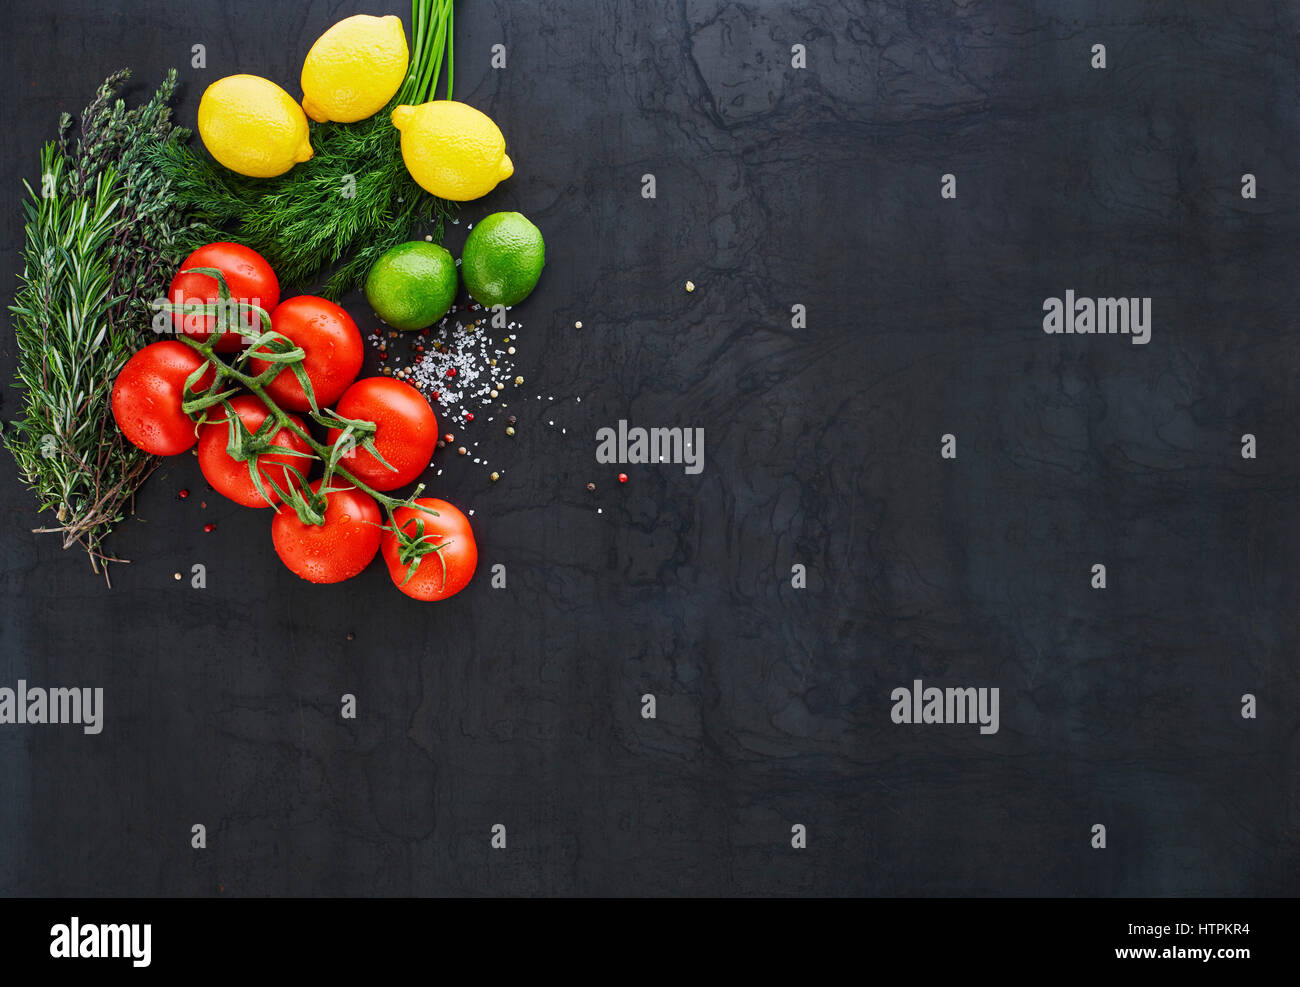 black rustic tabletop with vine of tomatoes, herbs, limes and lemons top view - Stock Image